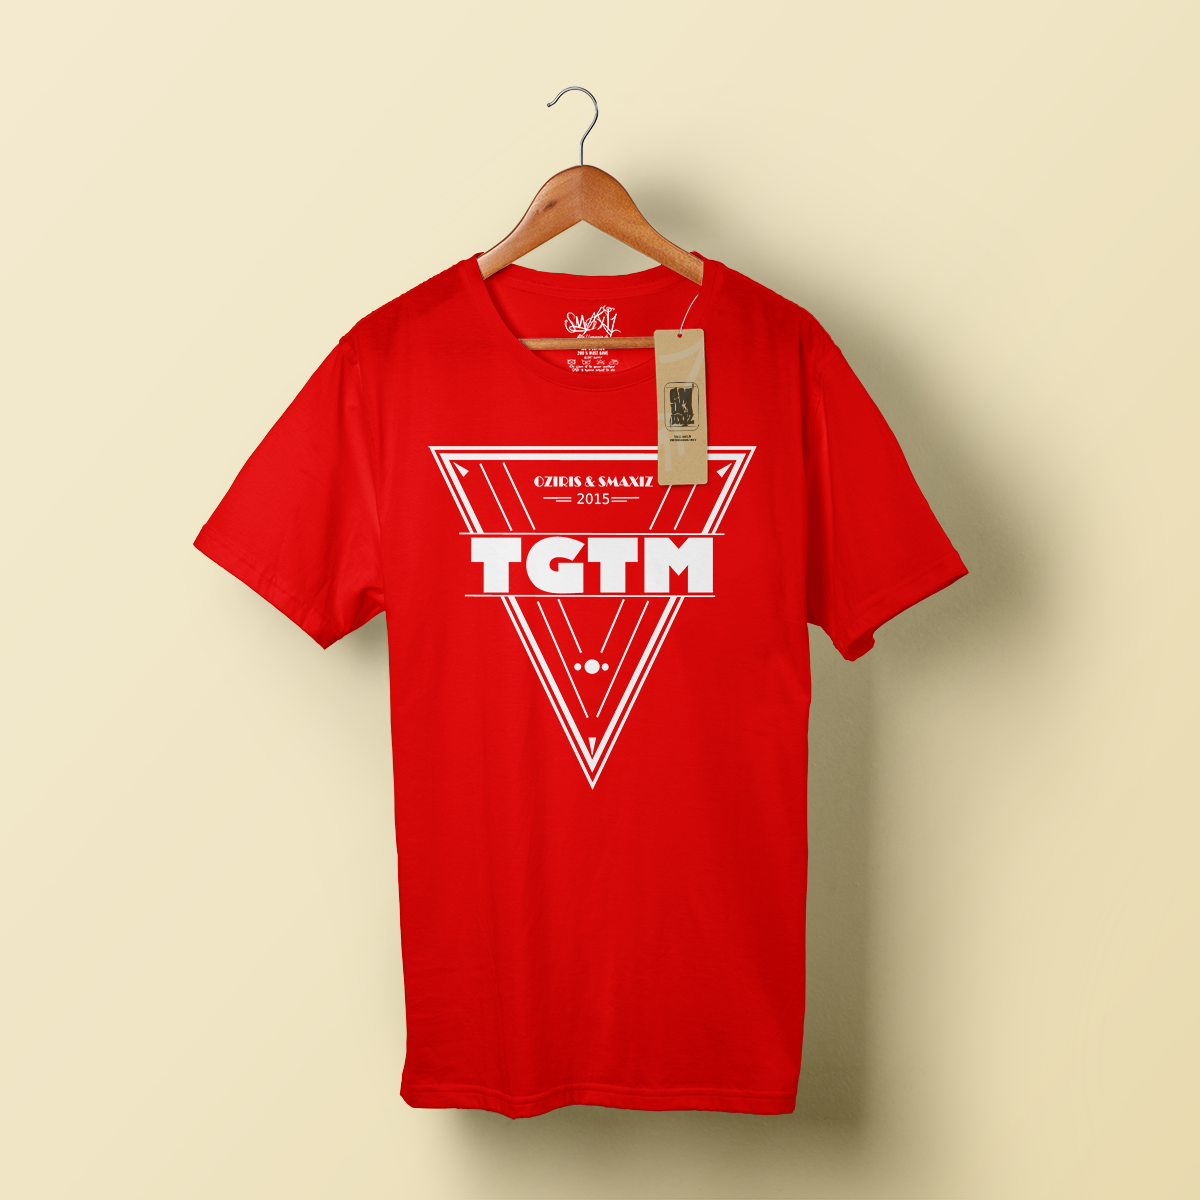 T-Shirt TGTM Red